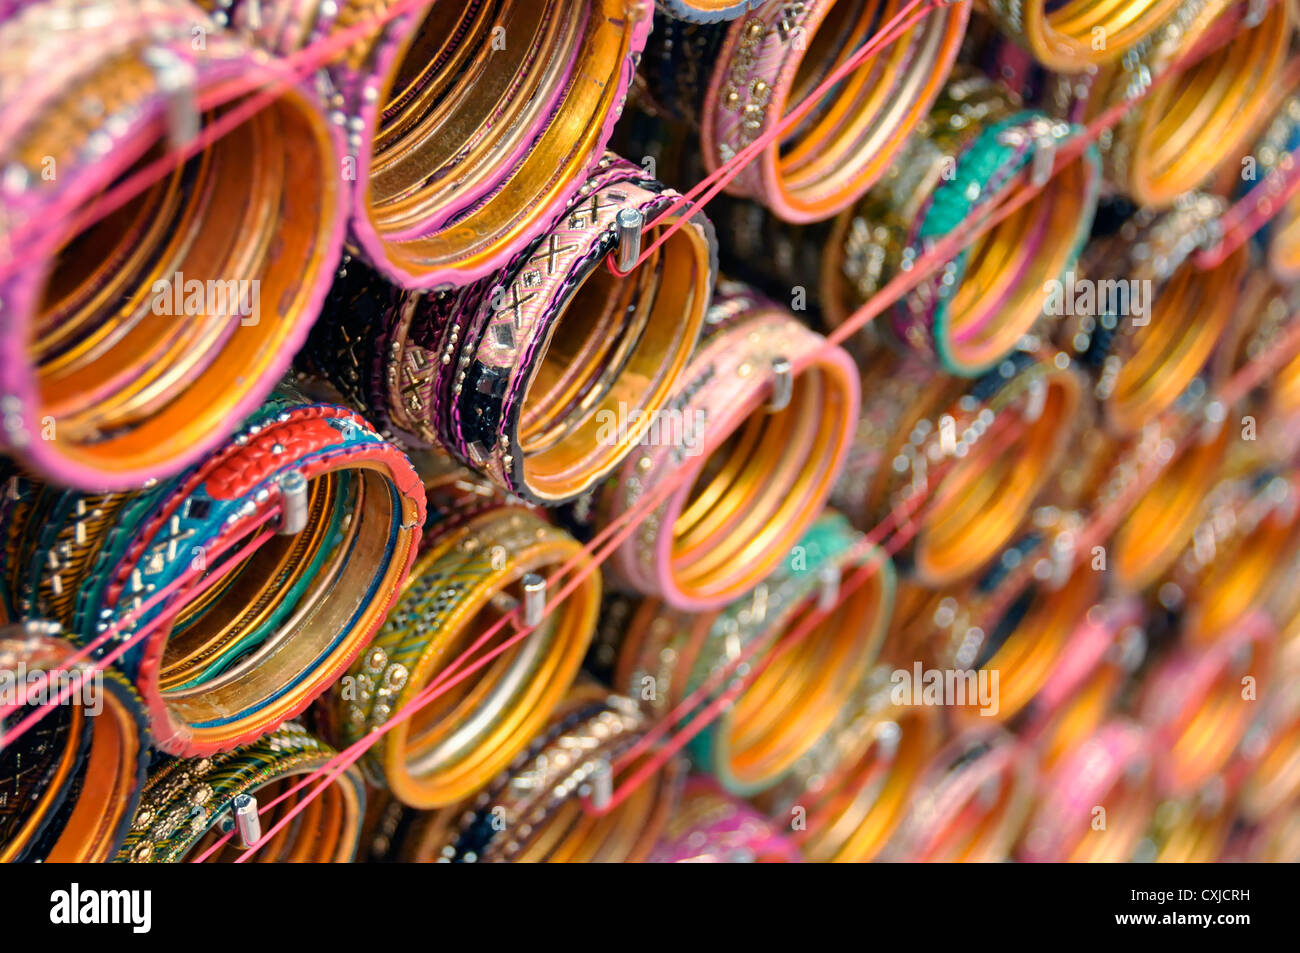 Indian bangles in a jewelry shop - Singapore - Stock Image